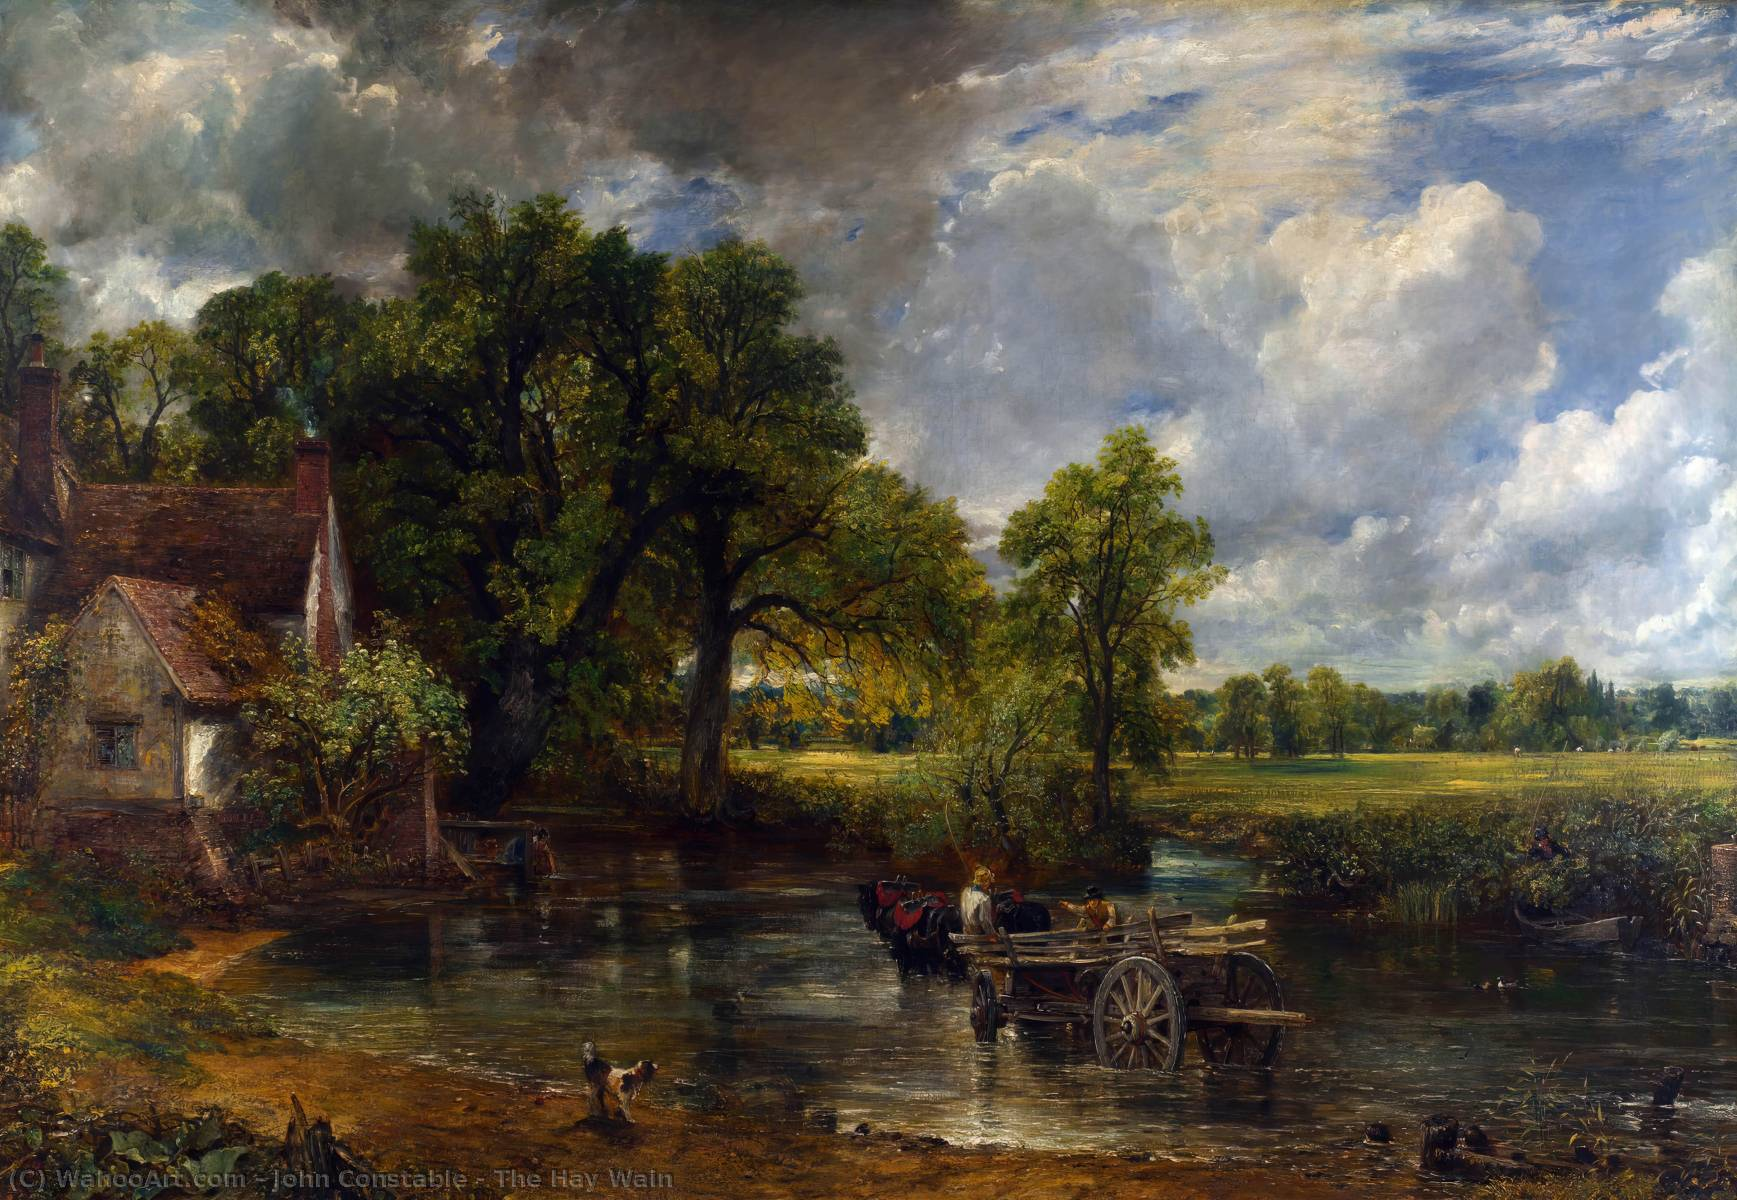 The Hay Wain, 1821 by John Constable (1776-1837, United Kingdom) | Art Reproductions John Constable | WahooArt.com